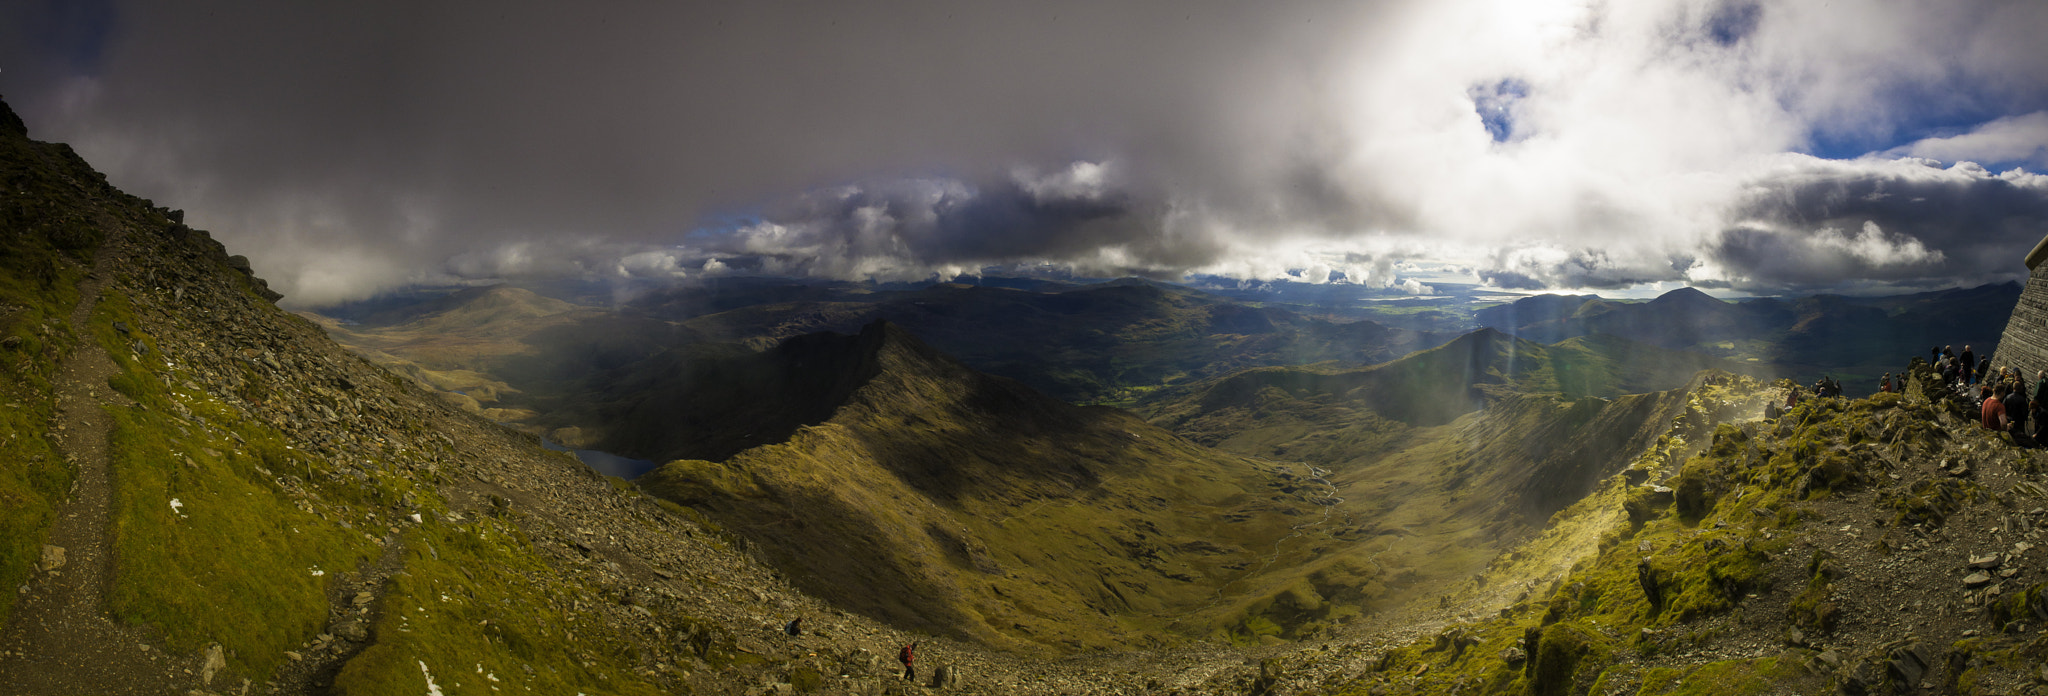 Photograph Snowdon Summit by Gavin Baker on 500px